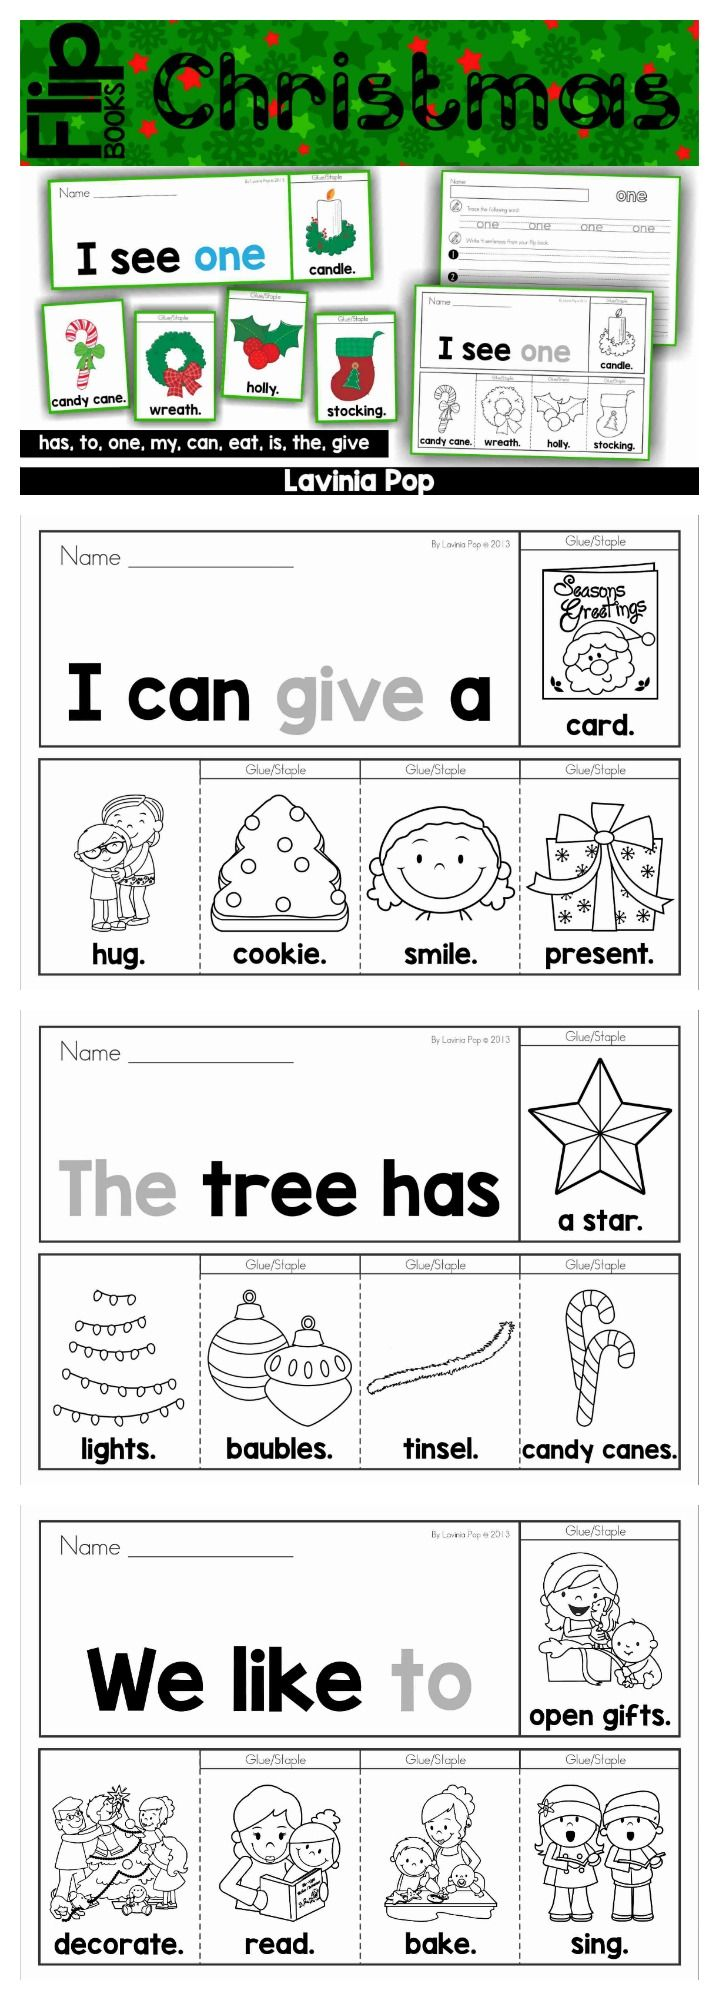 Uncategorized The Best Christmas Pageant Ever Worksheets worksheet the best christmas pageant ever worksheets luizah 17 images about on pinterest reindeer sight